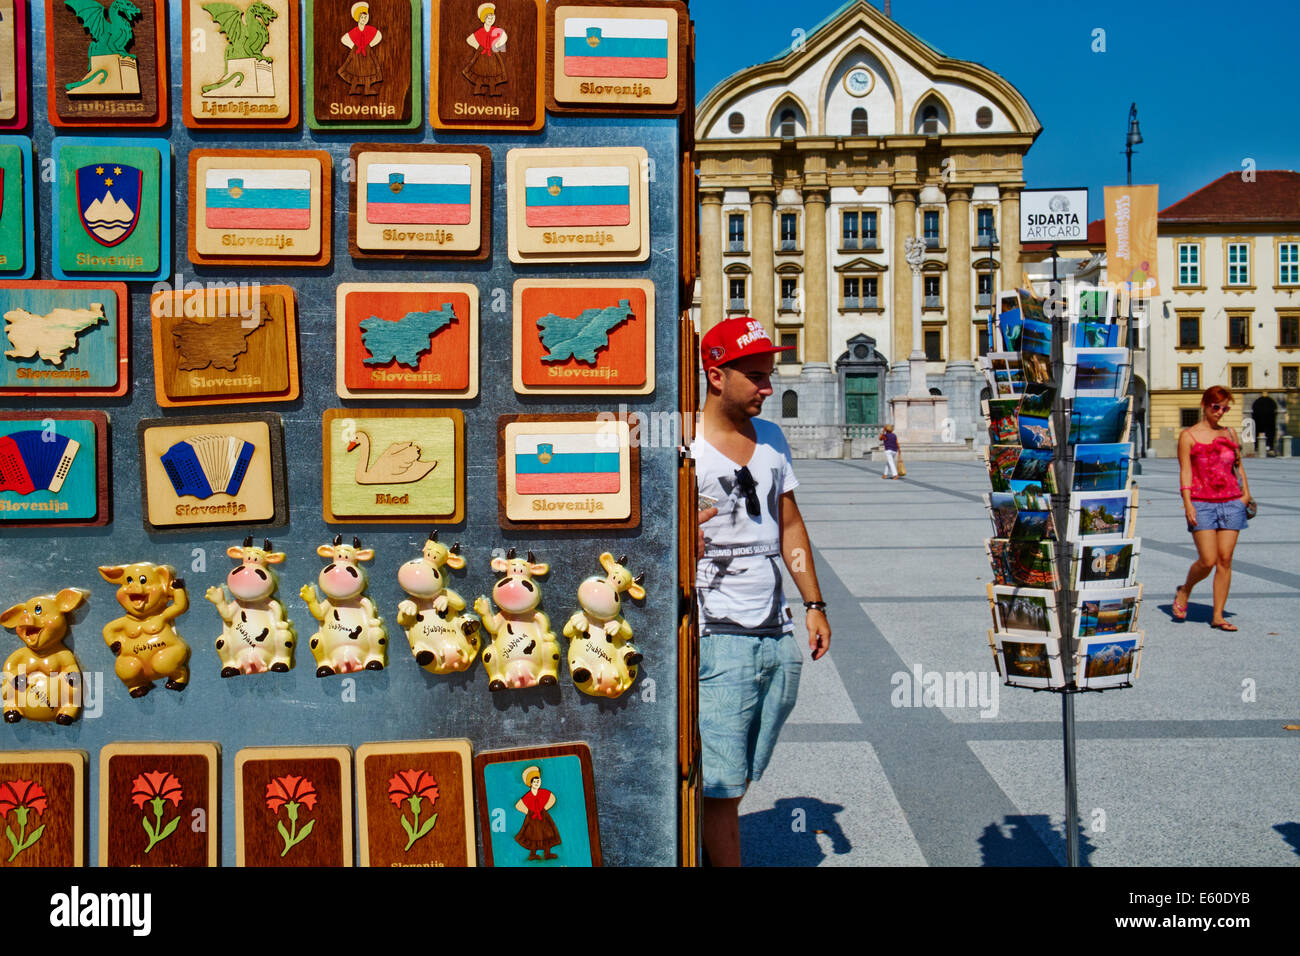 Slovenia, Ljubljana, Kongresni Square, Ursuline Church of the Holy Trinity, souvenir shop - Stock Image